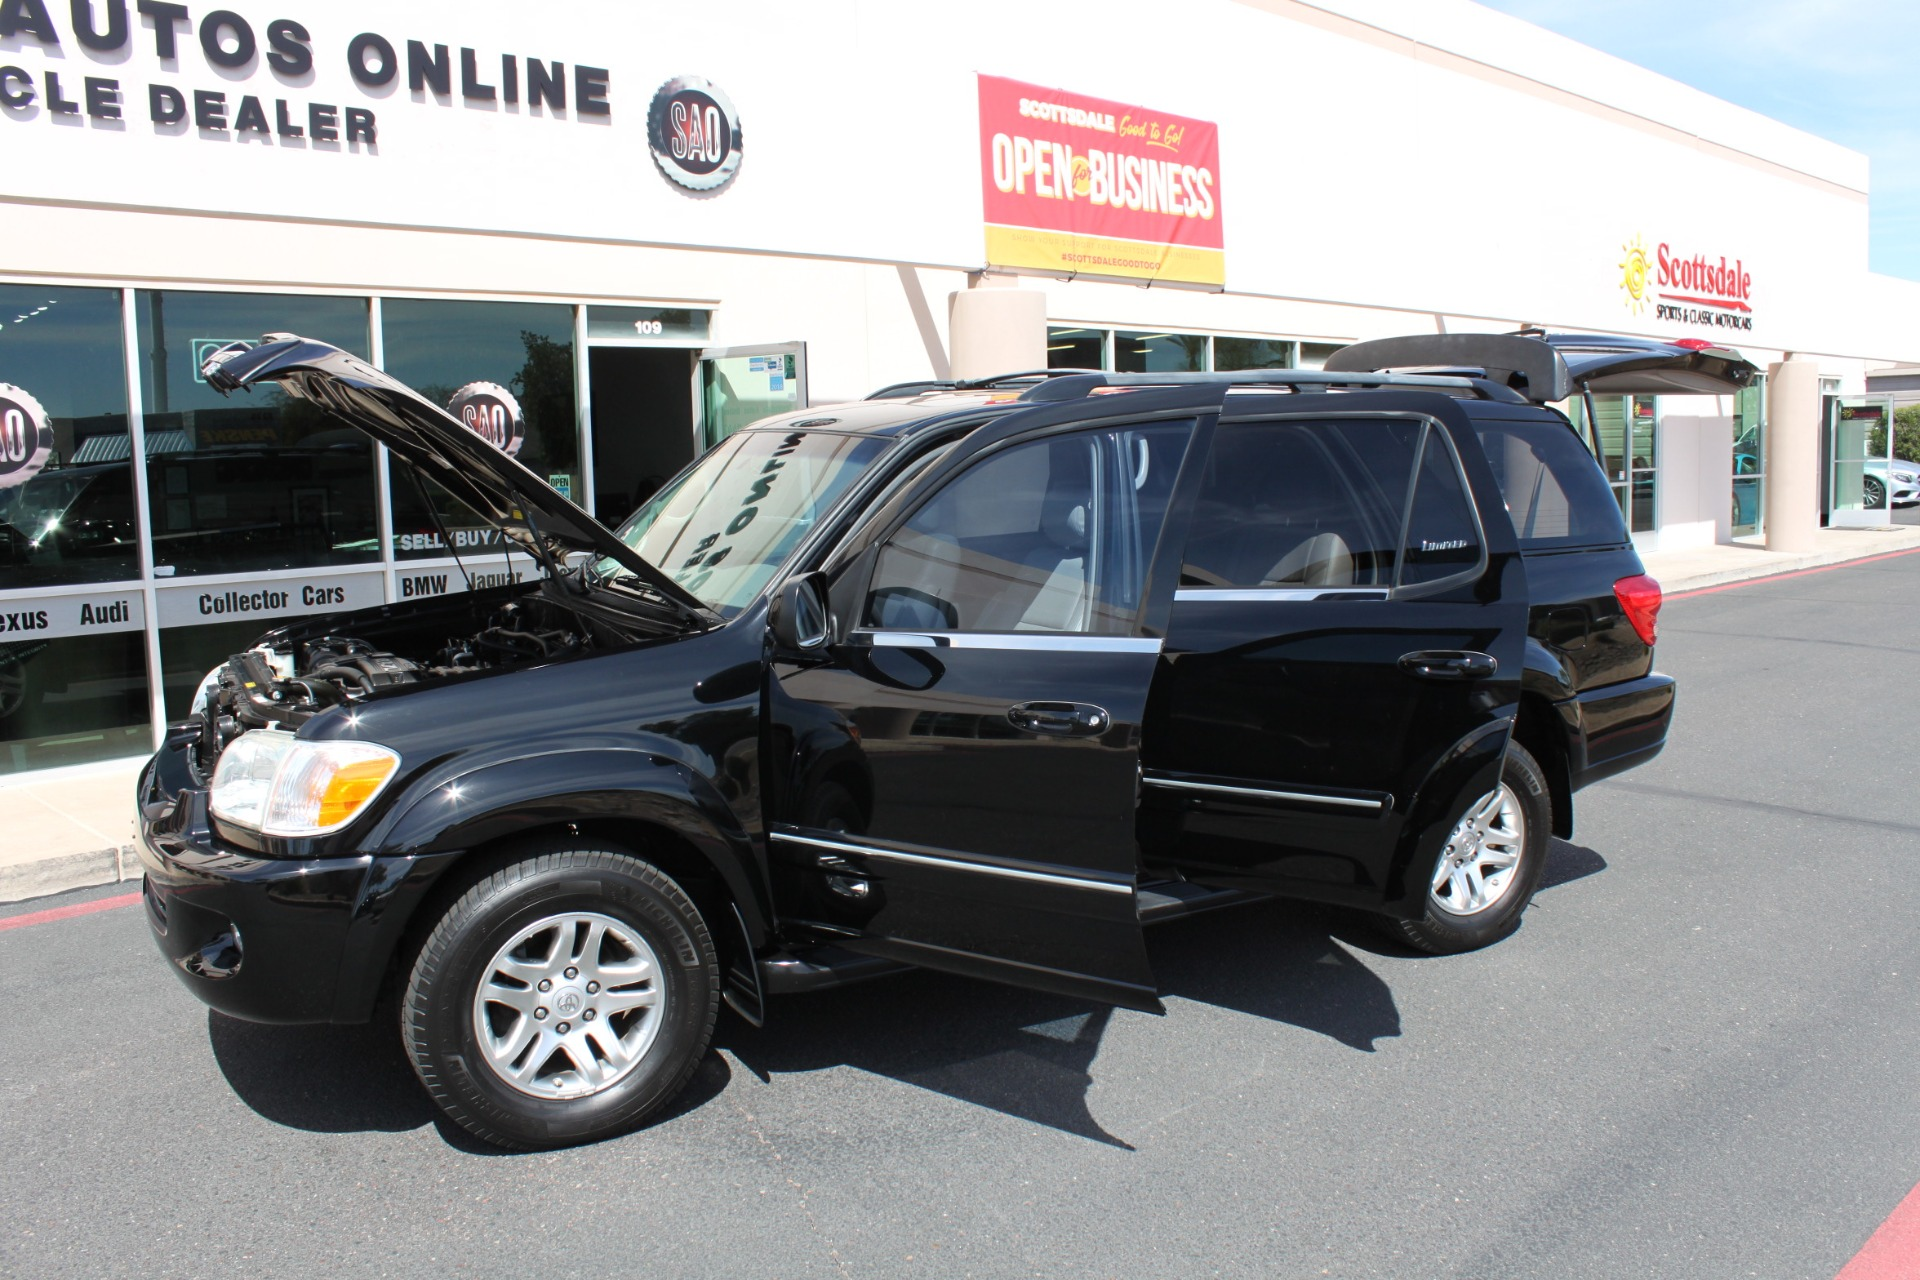 Used-2005-Toyota-Sequoia-Limited-Land-Cruiser